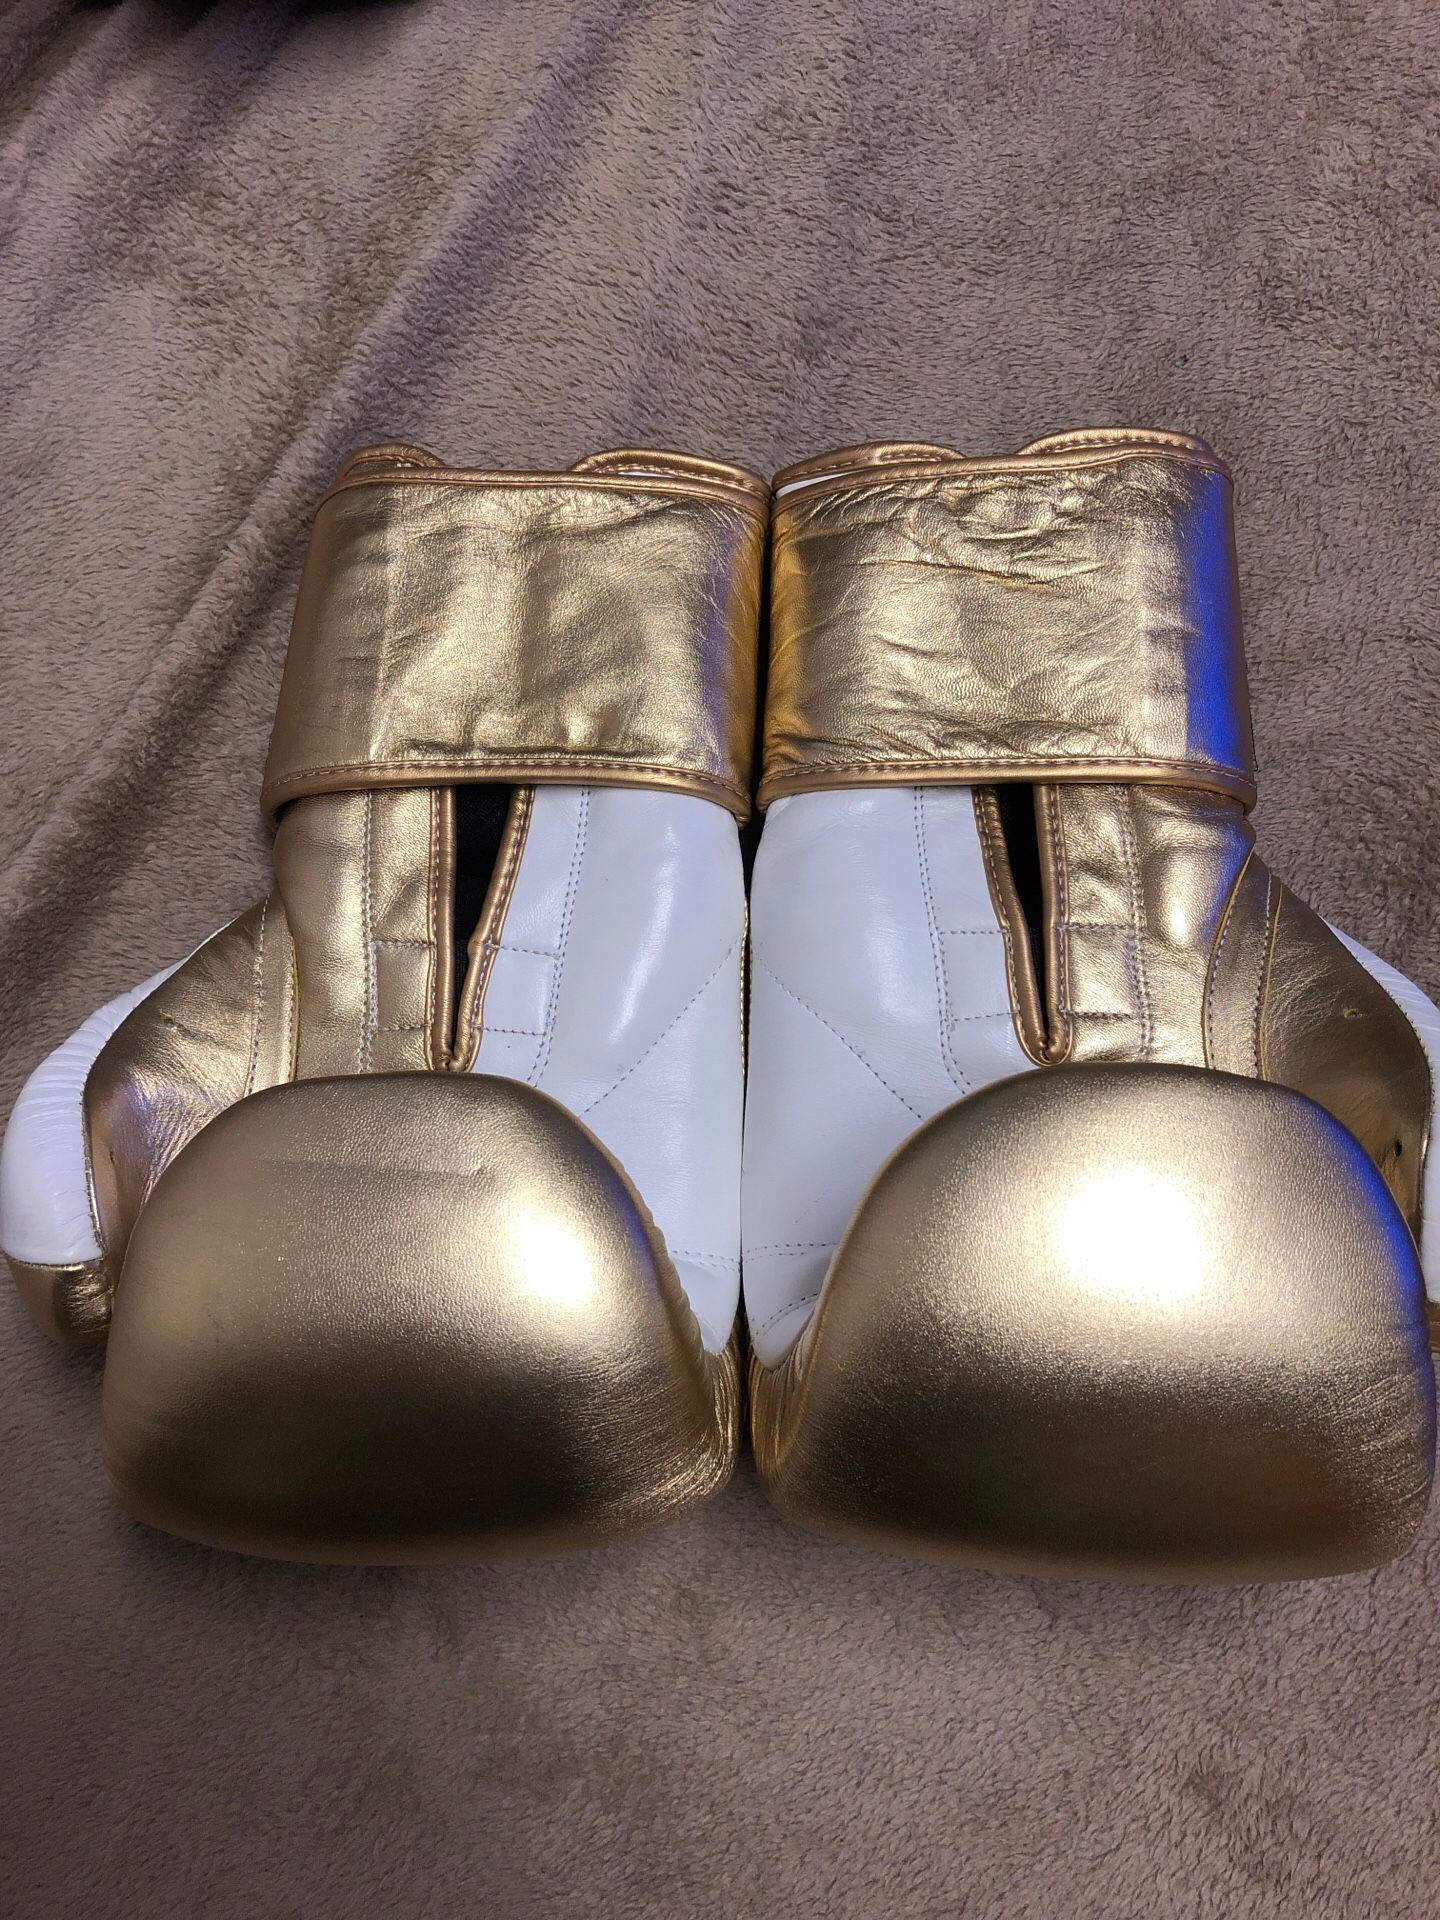 Brand new leather boxing gloves real leather